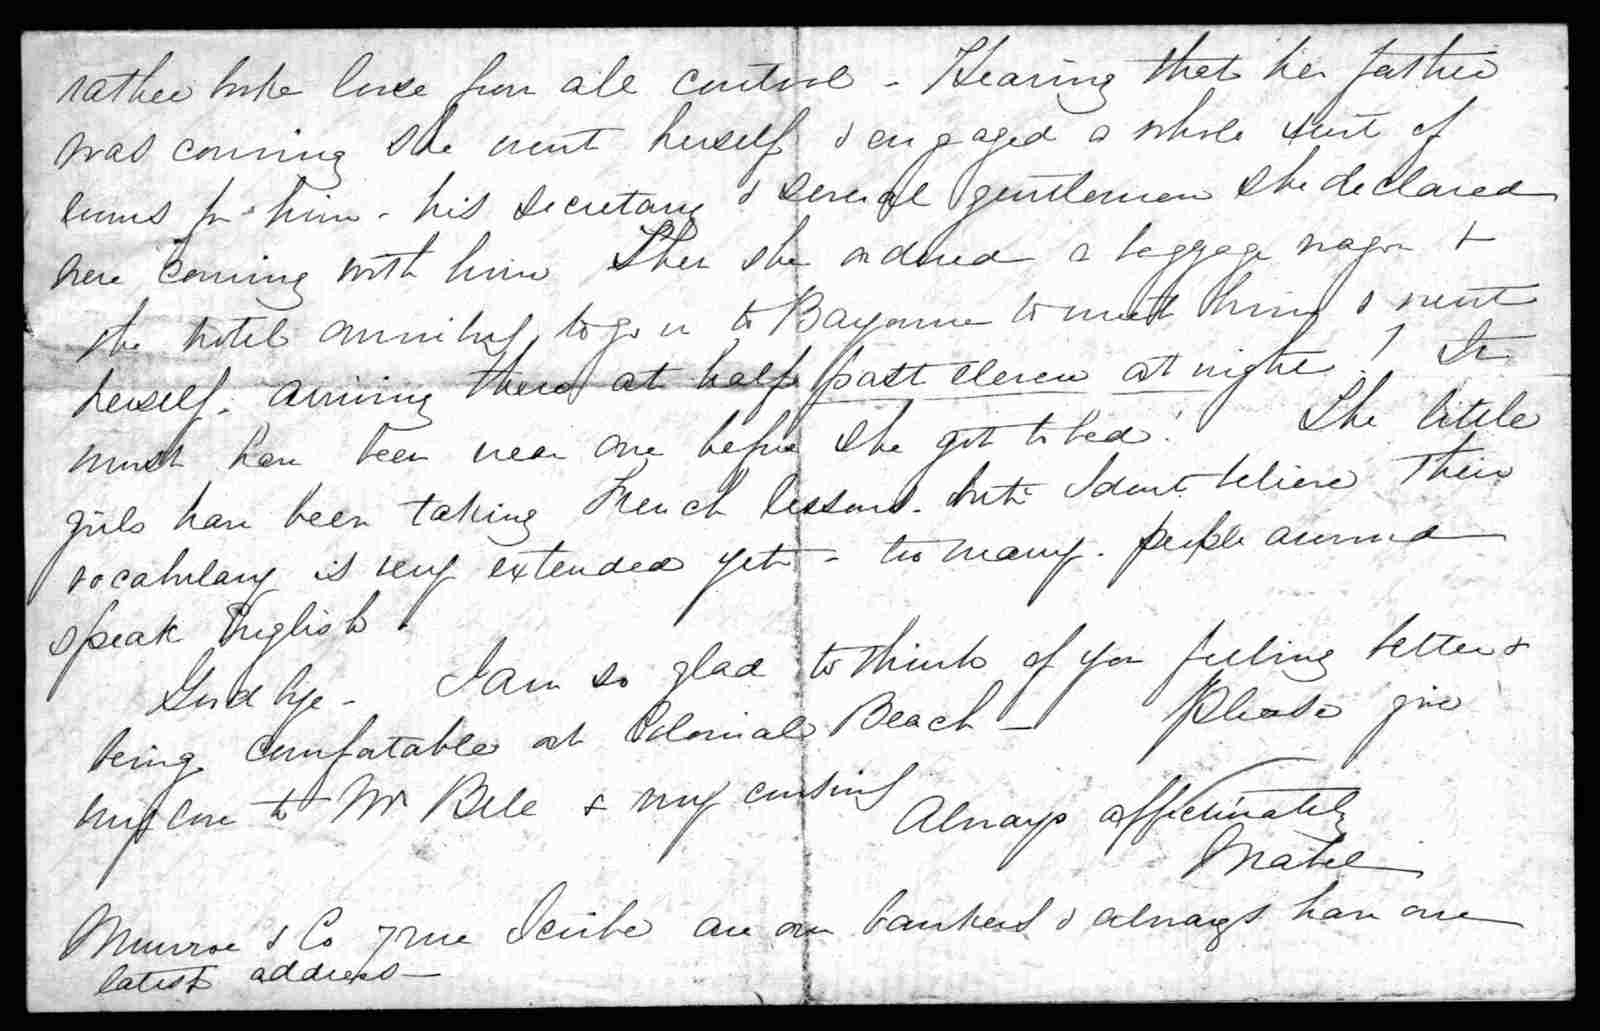 Letter from Mabel Hubbard Bell to Eliza Symonds Bell, July 8, 1888